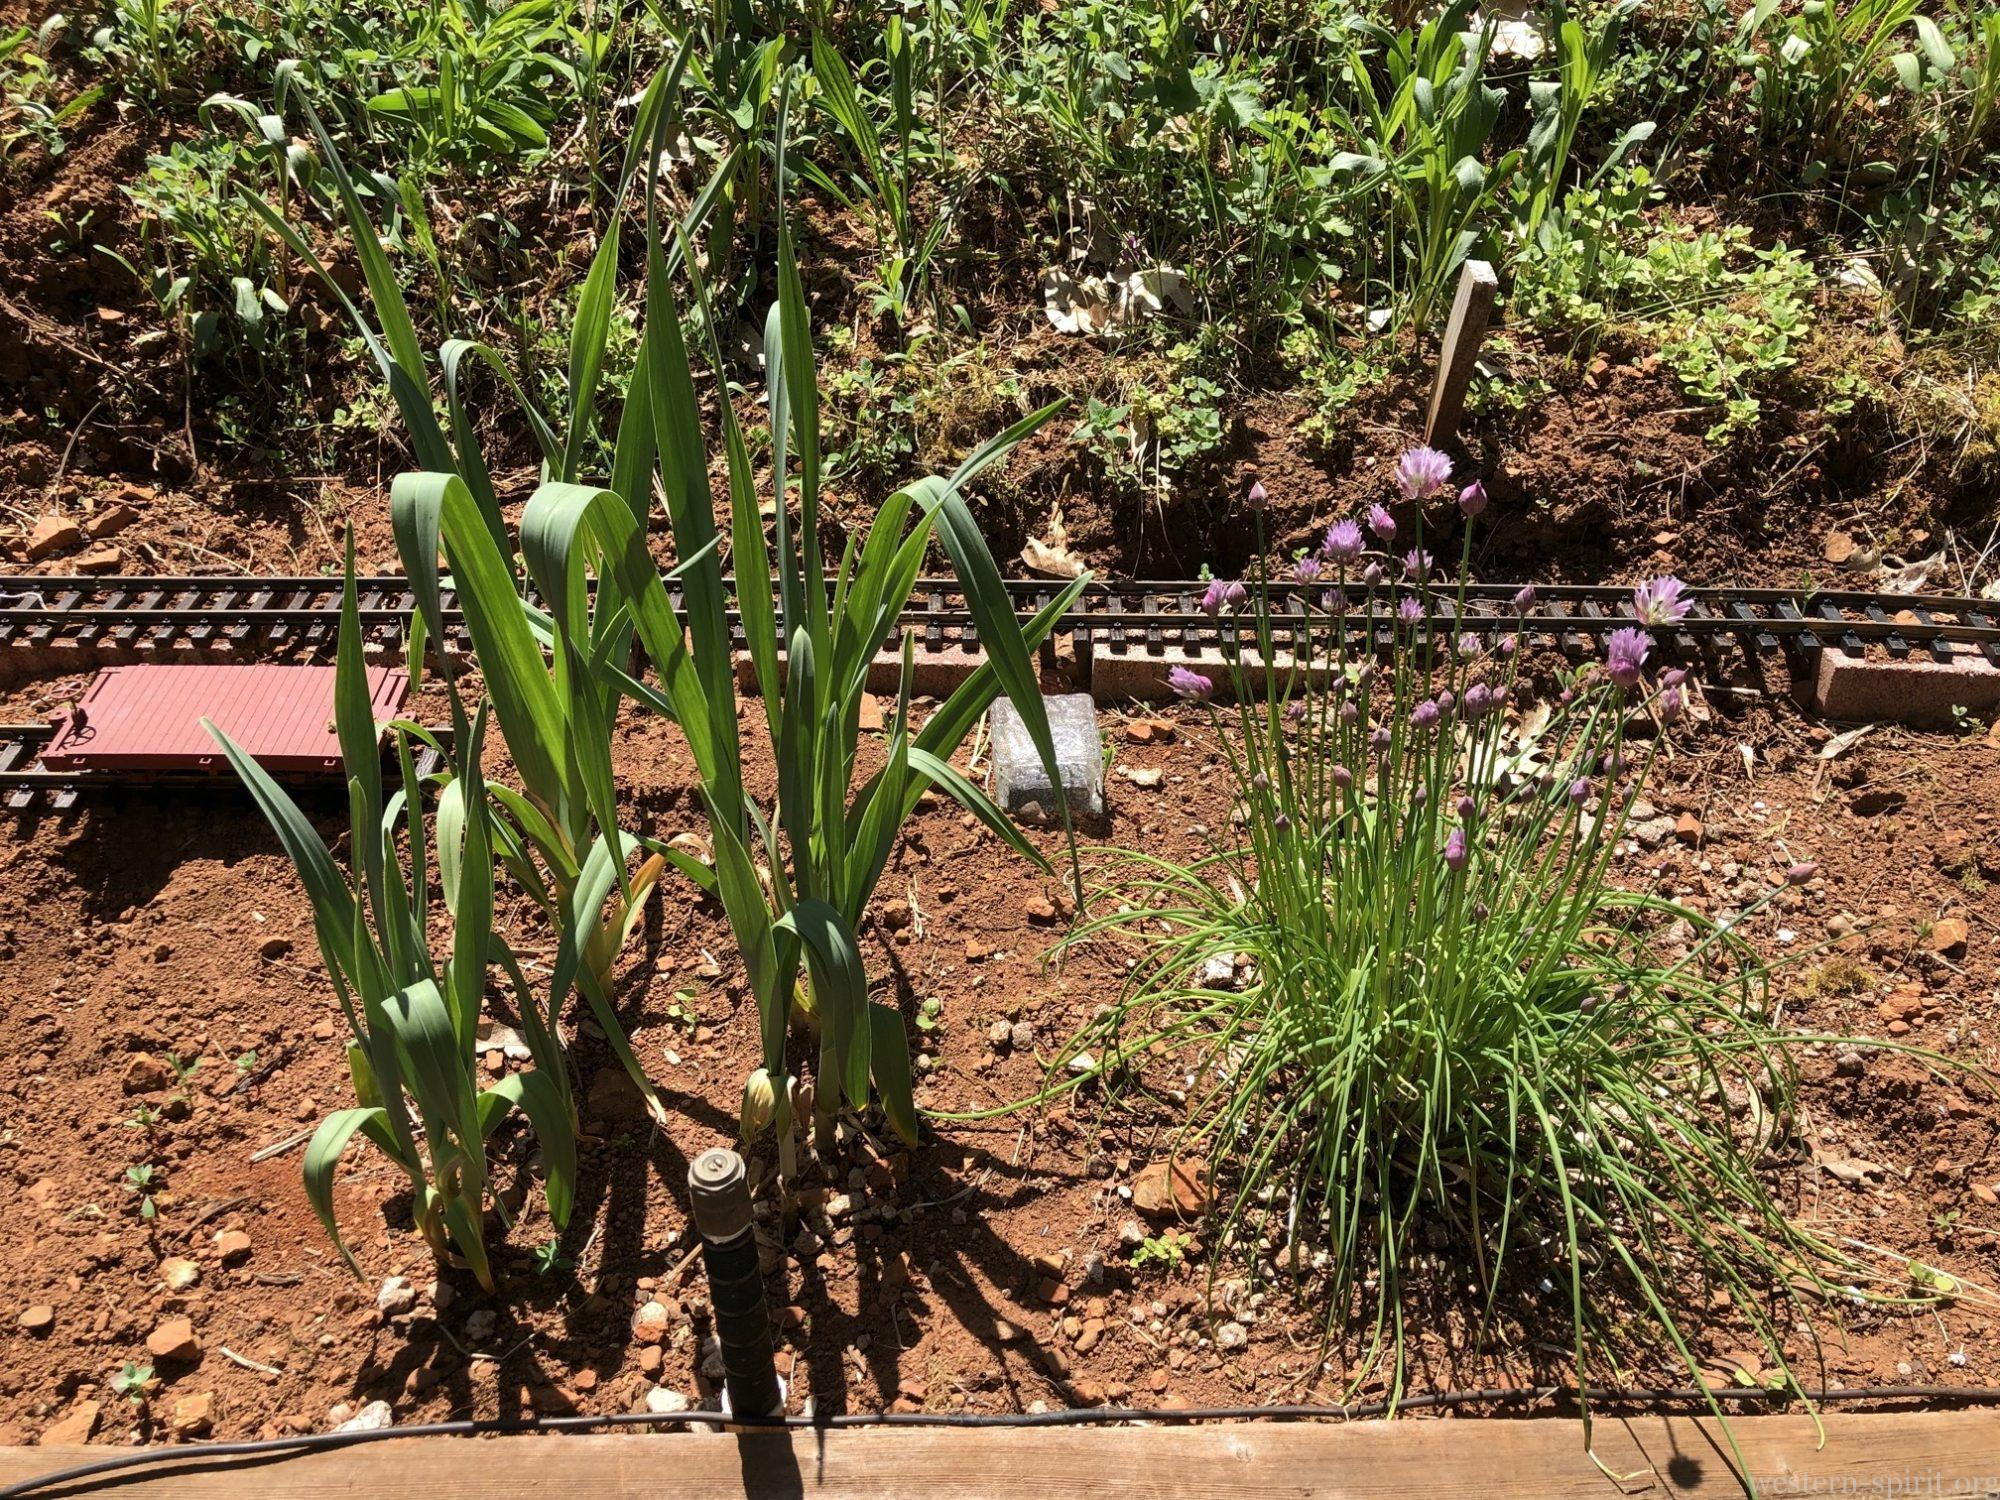 White onions (left) and chives (right)